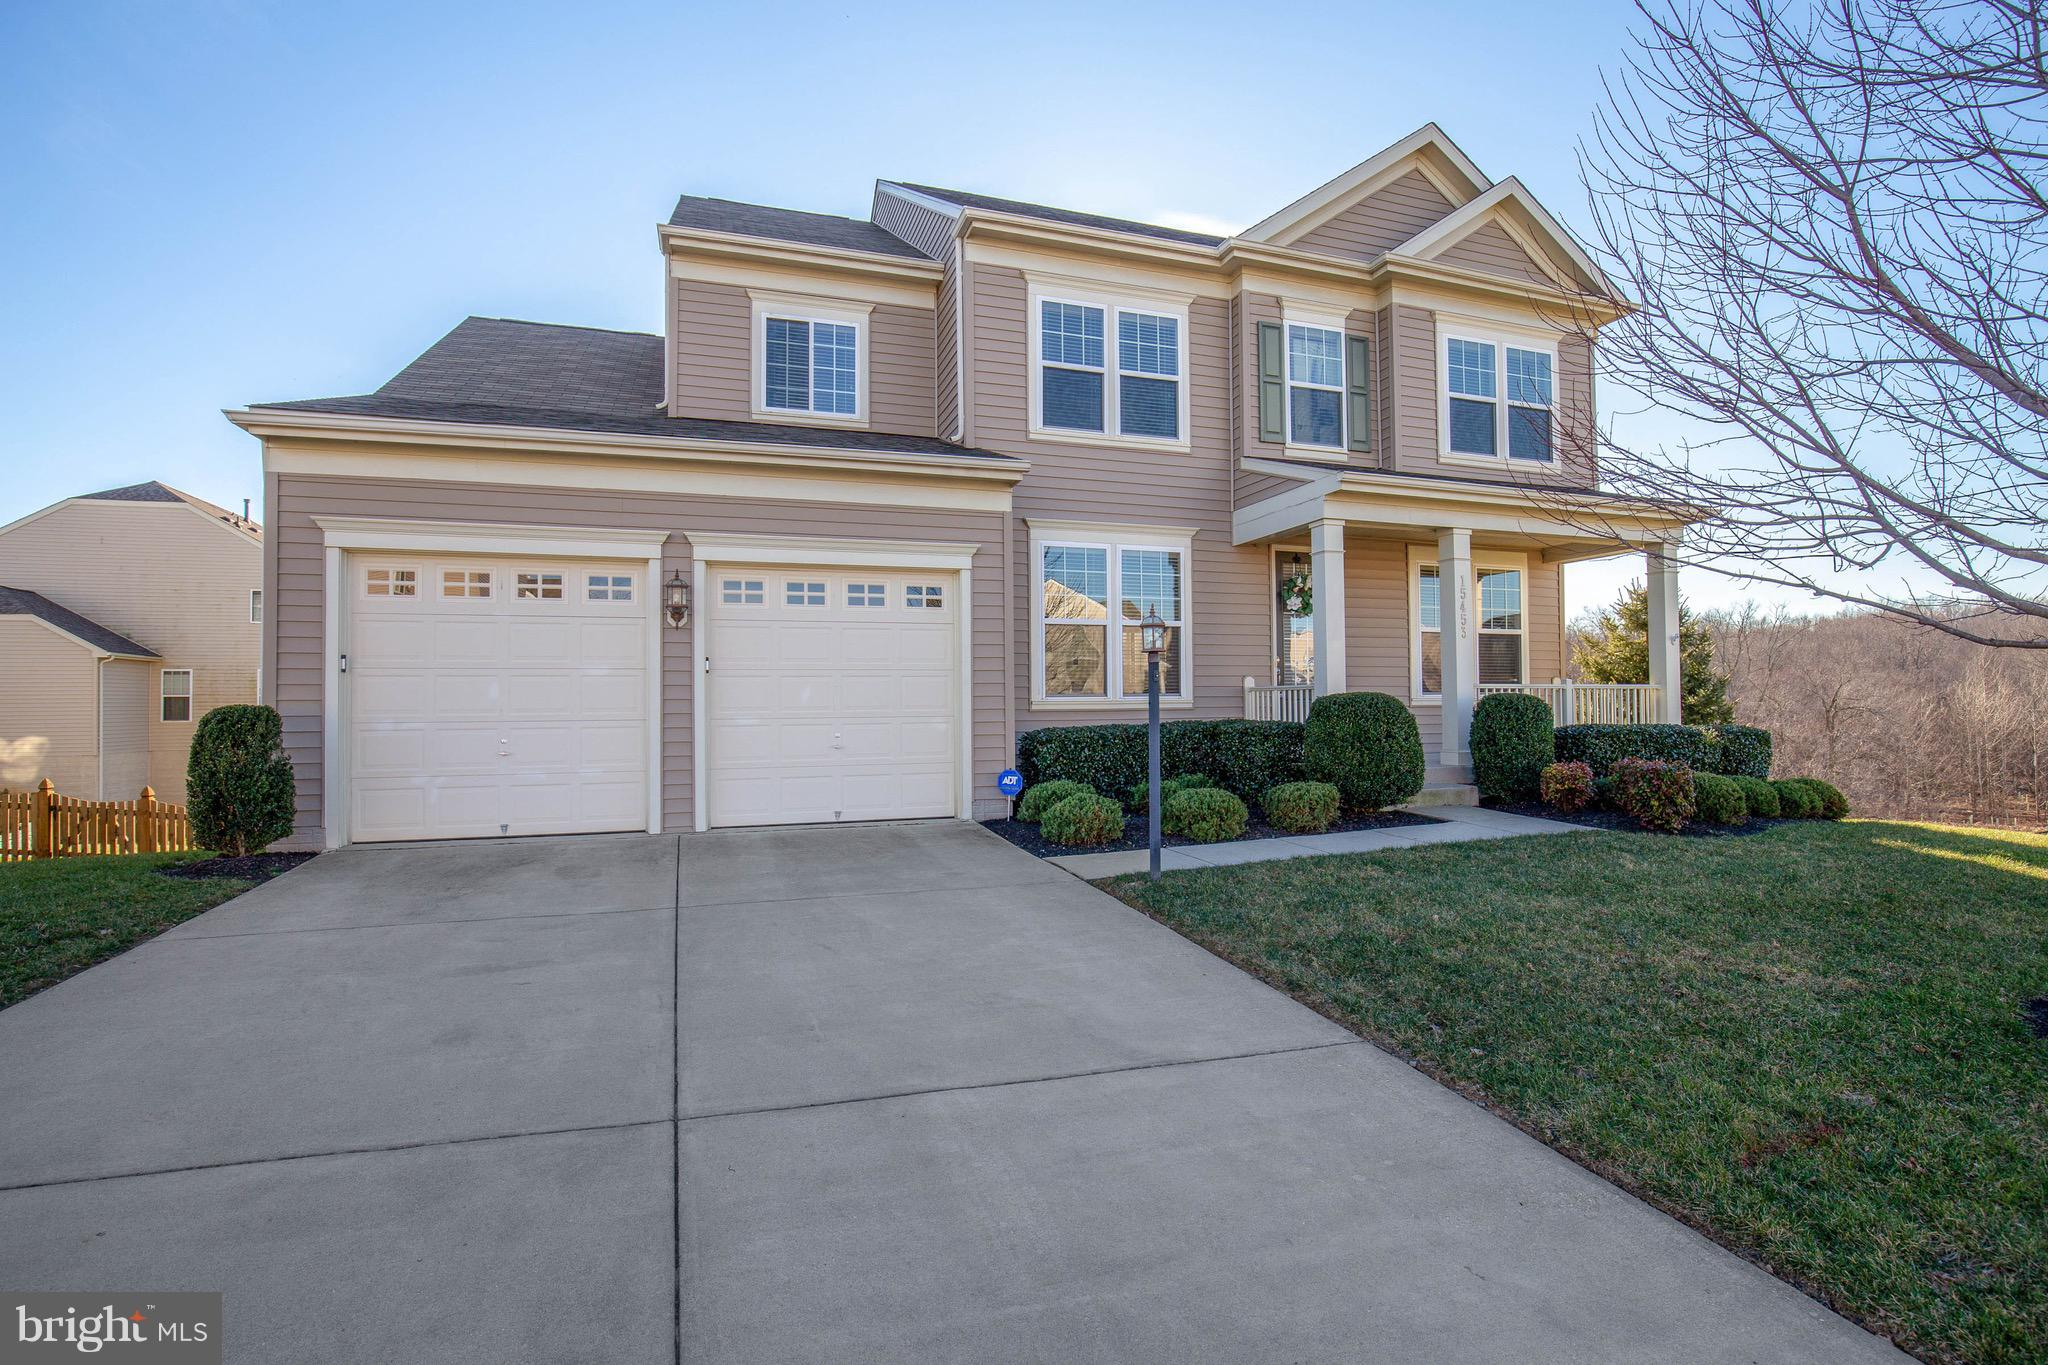 This home is priced to sell!  Gorgeous Carey model by Stanley Martin!  Nice open floor plan with beautiful engineered hardwood floors, huge gourmet kitchen with extra large island.  This kitchen has an incredible amount of cabinets and large pantry.  You'll love having a wet bar right off the kitchen that leads to the dining room with beautiful crown molding!  Kitchen has huge eat in area that leads to the family room with fireplace.  Upper level has master bedroom suite with tray ceilings, two large dual walk in closets, and luxury bathroom with separate shower, soaking tub, and dual vanities.  What I love about the upstairs is that this home is equipped with an upper level laundry that's really spacious!  The upper level also has 3 full baths which is an awesome feature to have.  The second bedroom has its own private bath.  The absolute best part of this home is the exterior.  It comes fully equipped with a spacious front porch and a breath taking composite deck with pavilion so you can enjoy the scenic view.  This home is an entertainers dream!